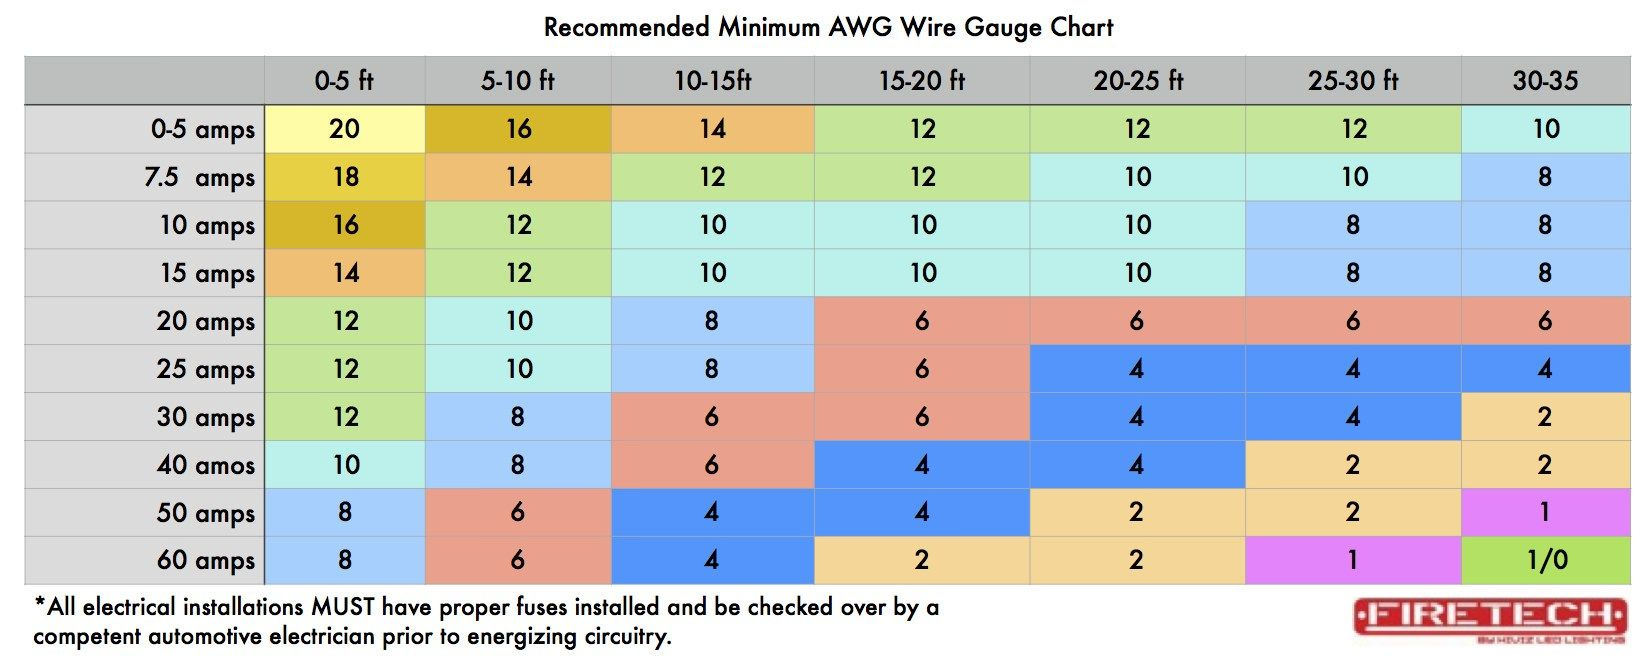 Attractive amp wire size chart illustration electrical system image result for wire size chart electrical pinterest chart greentooth Choice Image